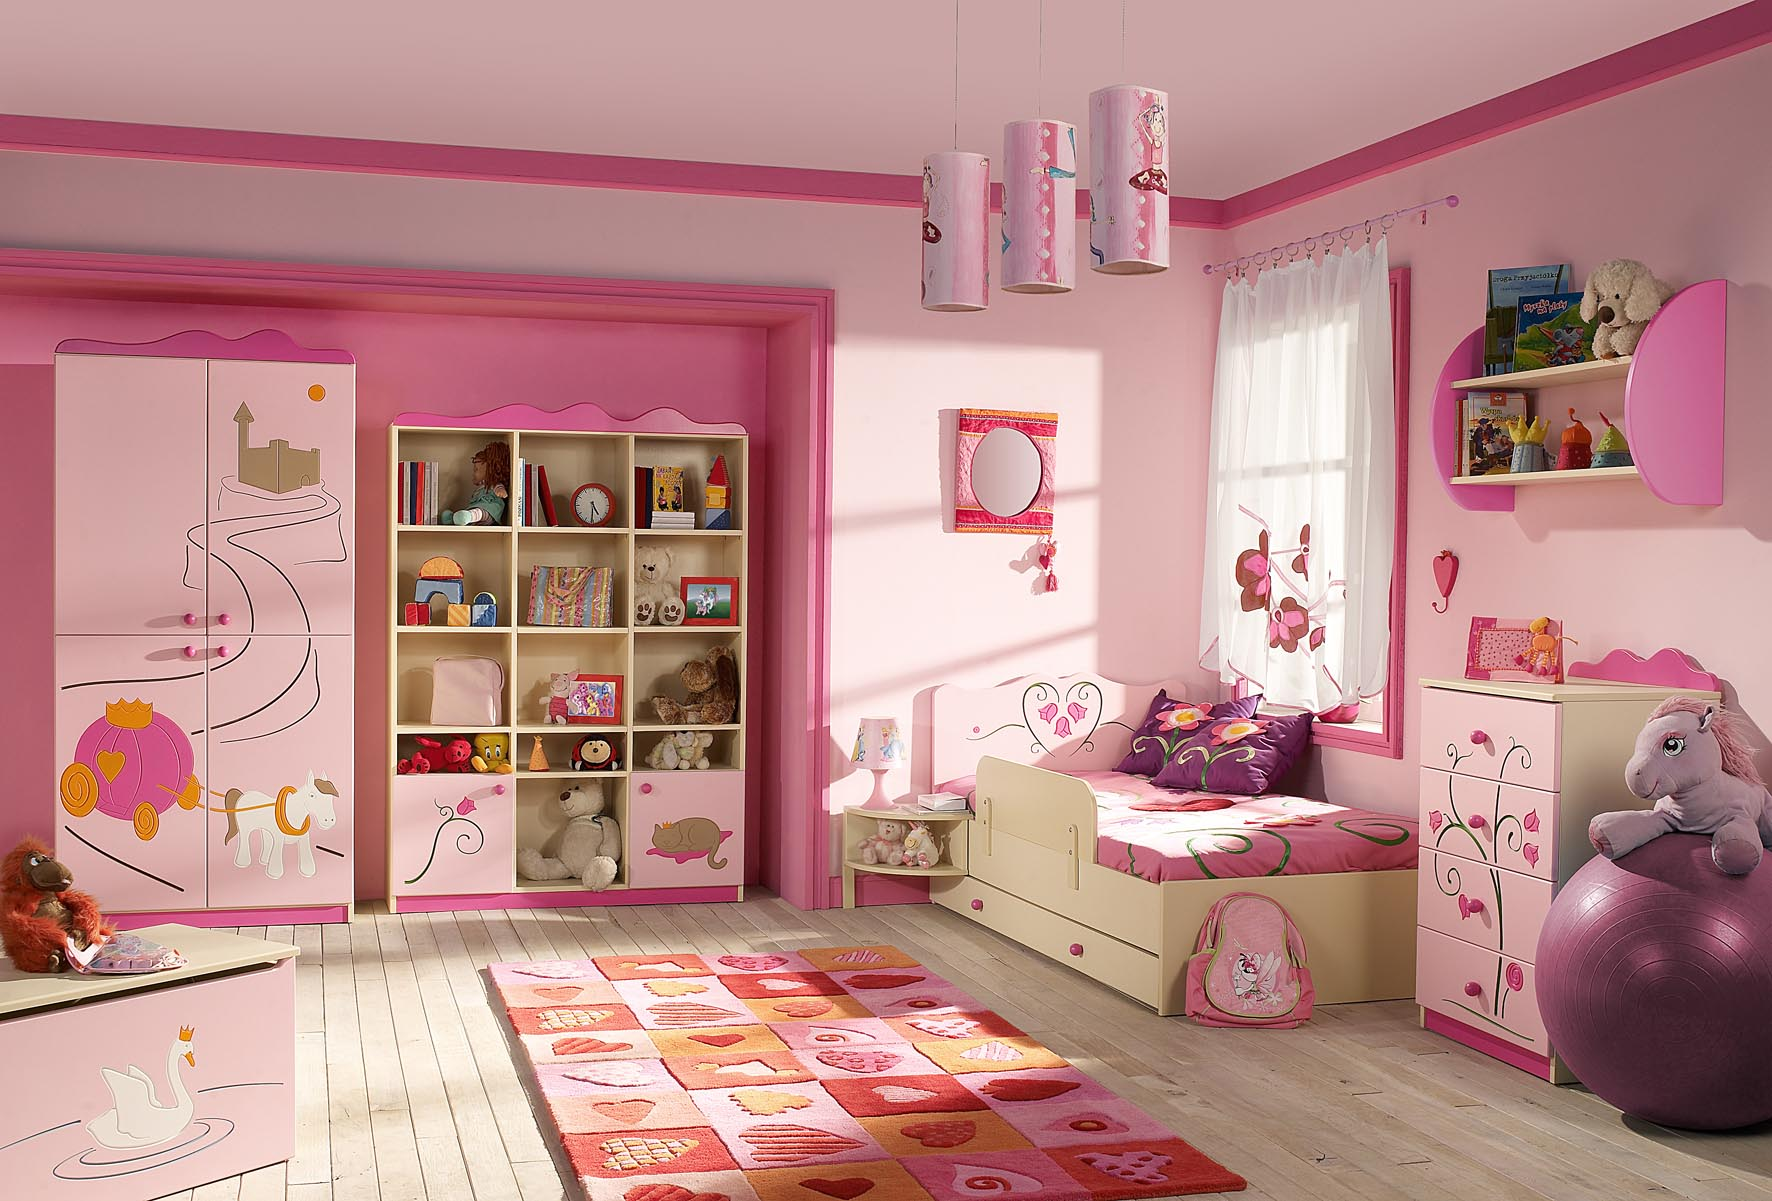 Modern Girl Bedroom Trends 2015 Design (View 9 of 10)